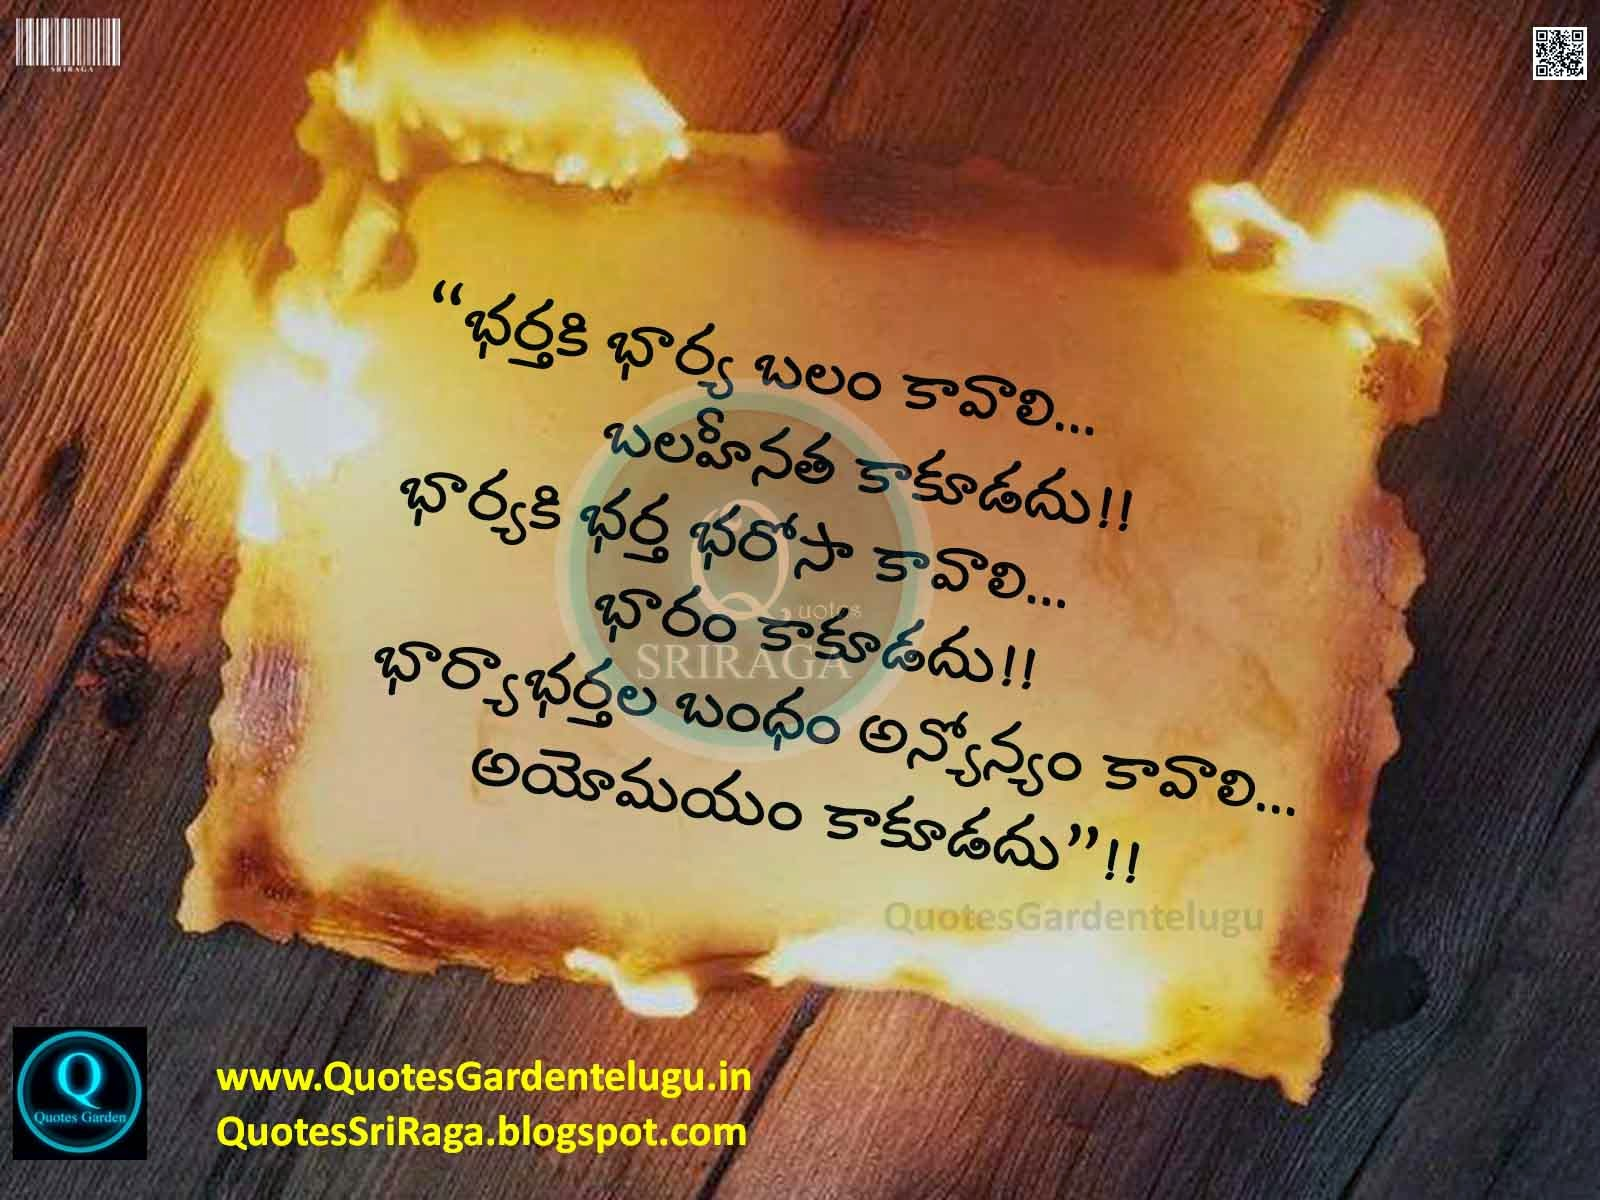 Famous Telugu Quotes Top Telugu Inspirational Life Quotes with images HdWallpapers with images Famous Telugu Quotes Top Telugu Inspirational Life Quotes with images Best Telugu Motivational Quotes HdWallpapers with images